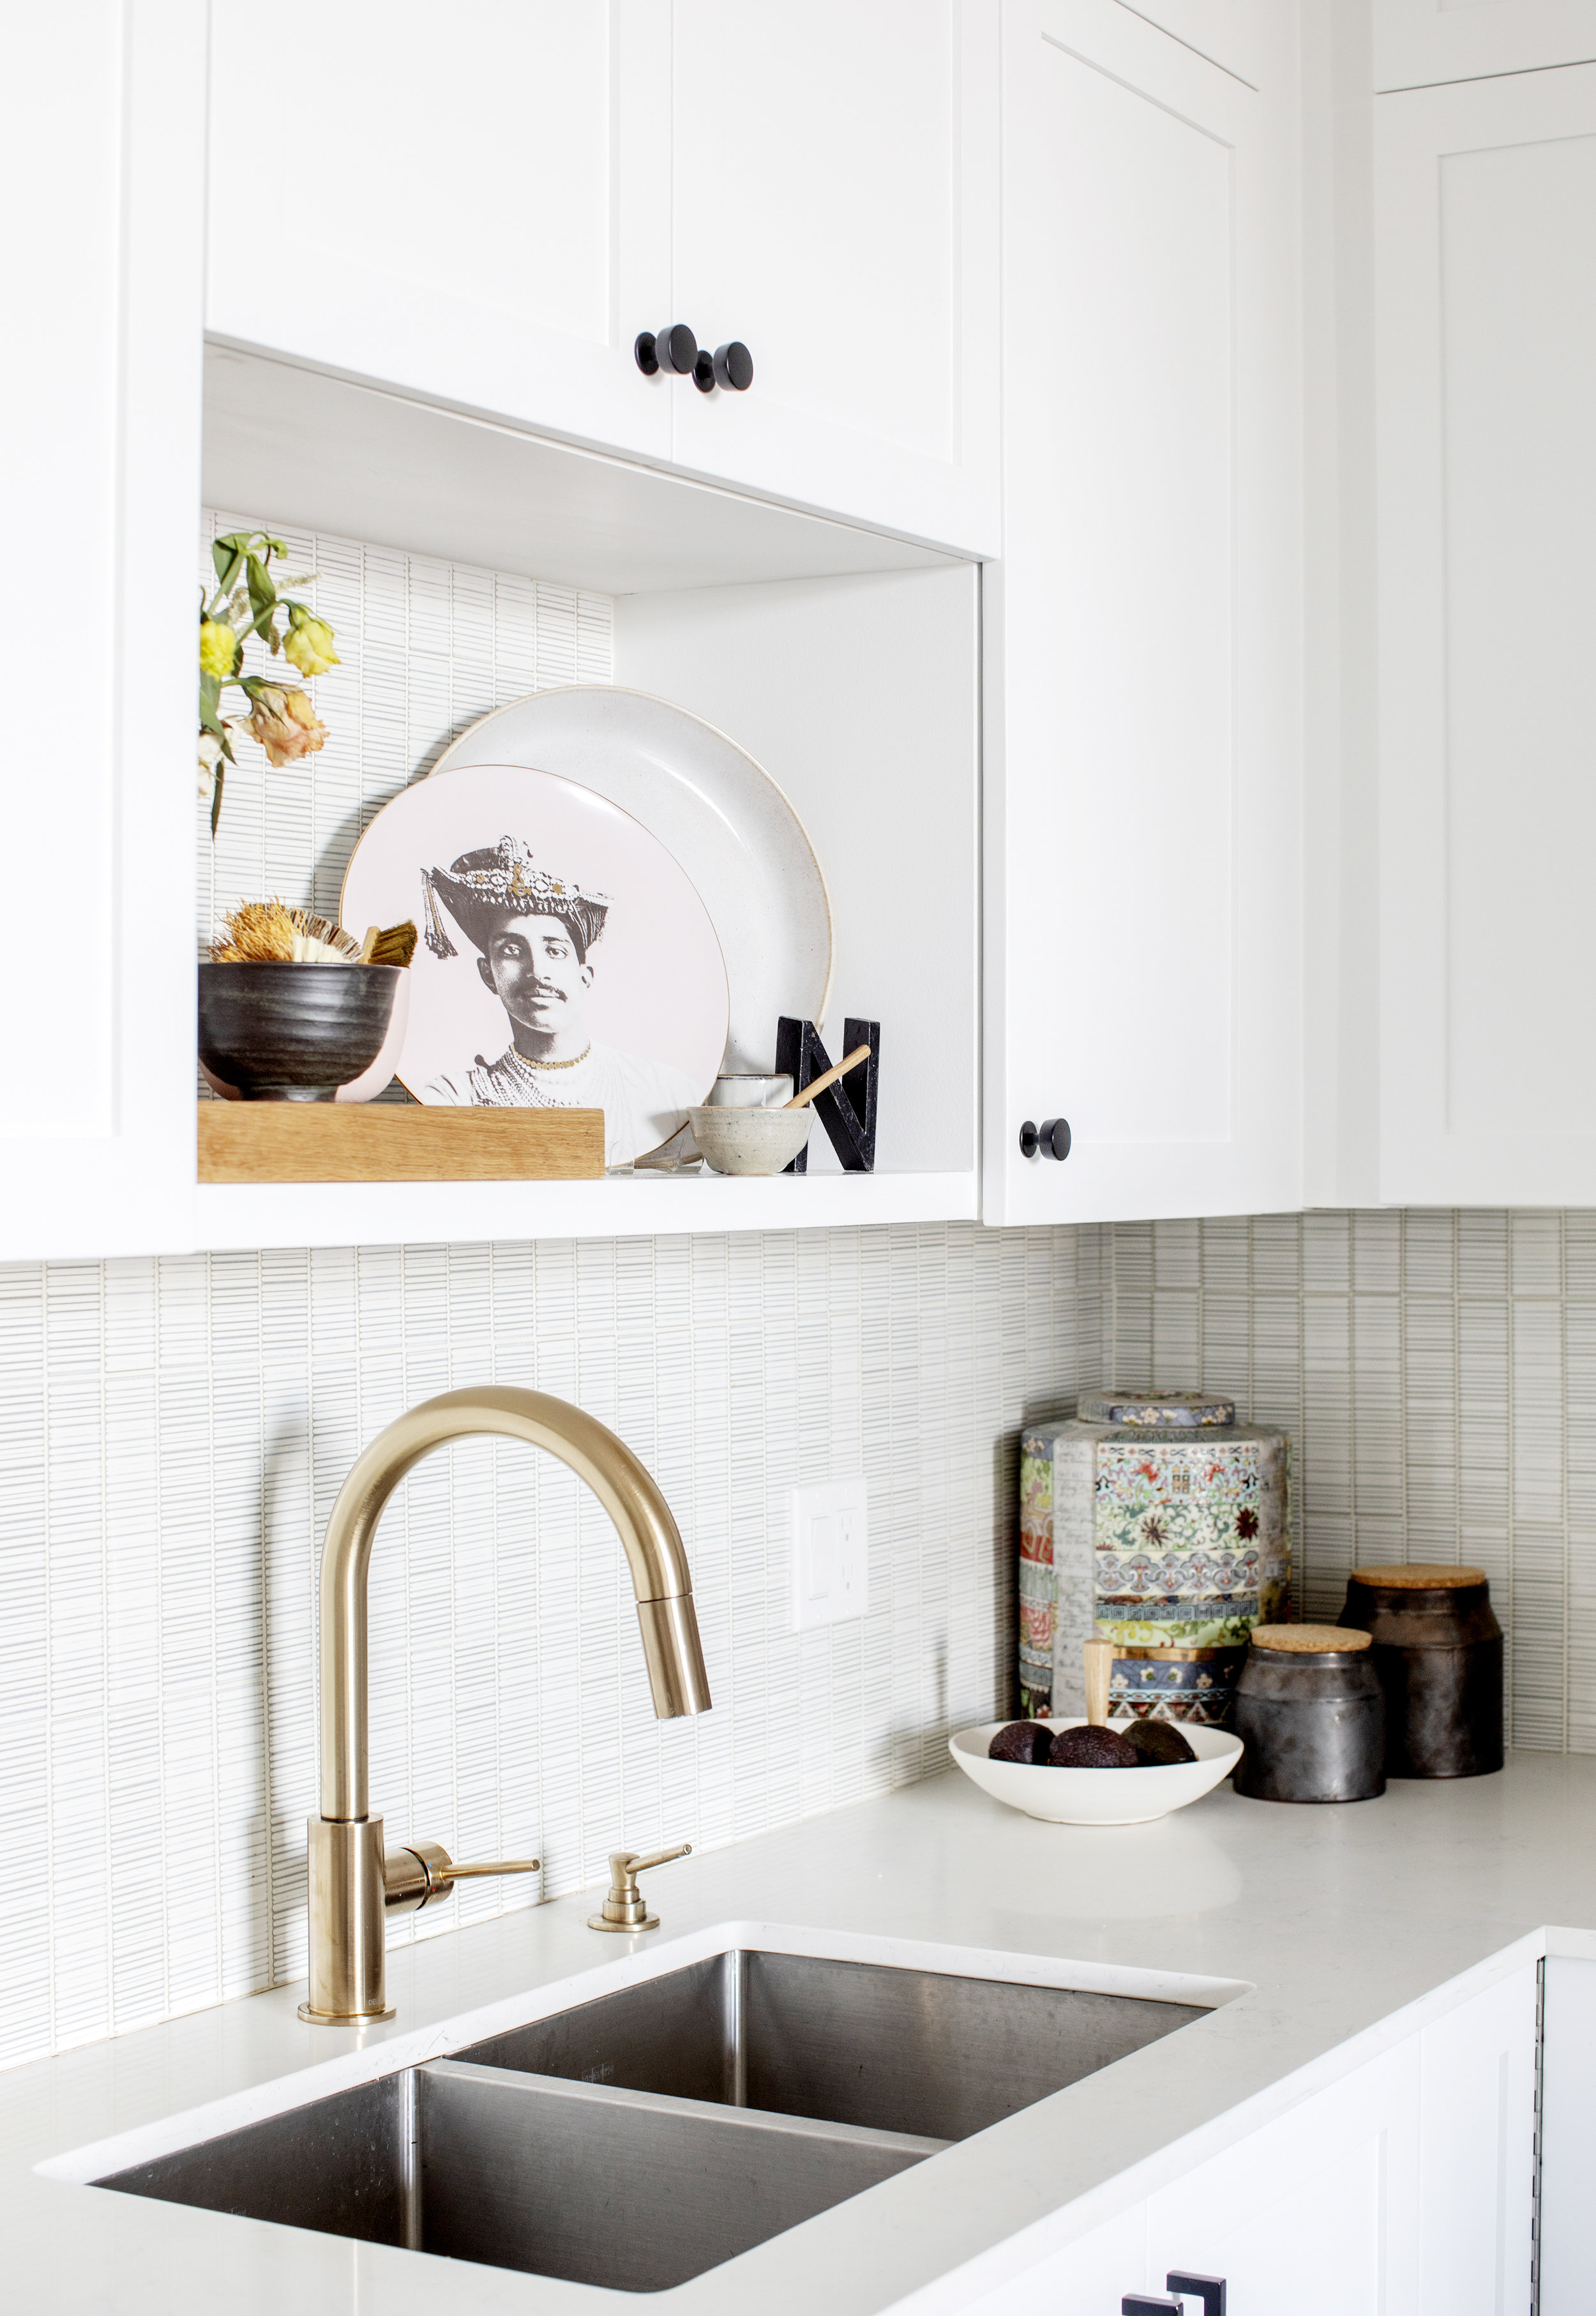 The kitchen sink at Prince Edward Street, featuring a gold faucet and double sinks